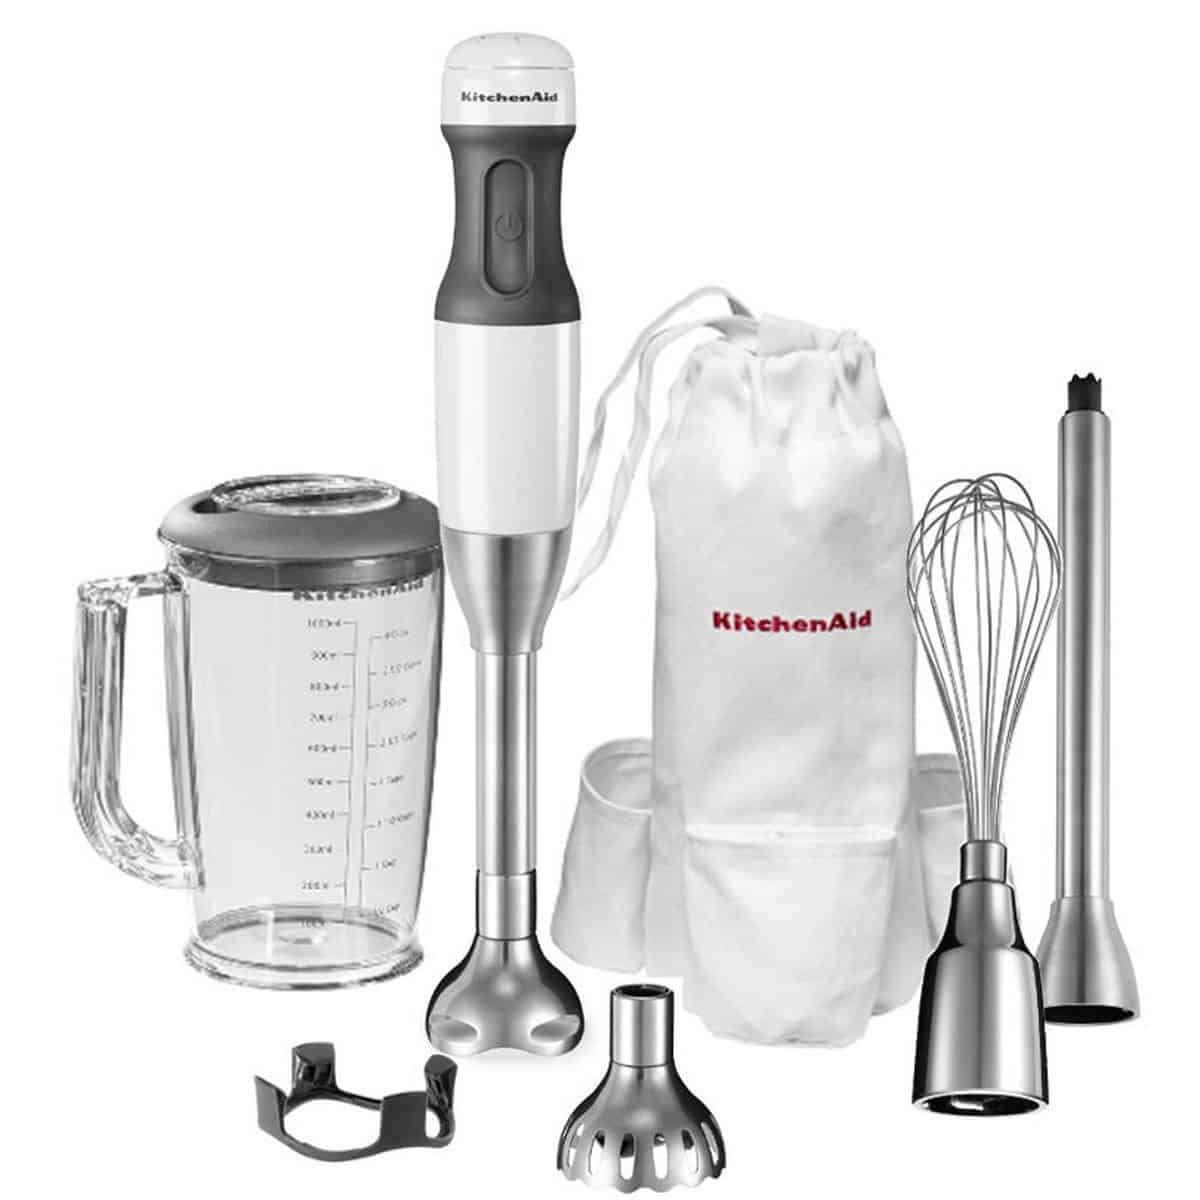 KitchenAid Stabmixer Set Classic